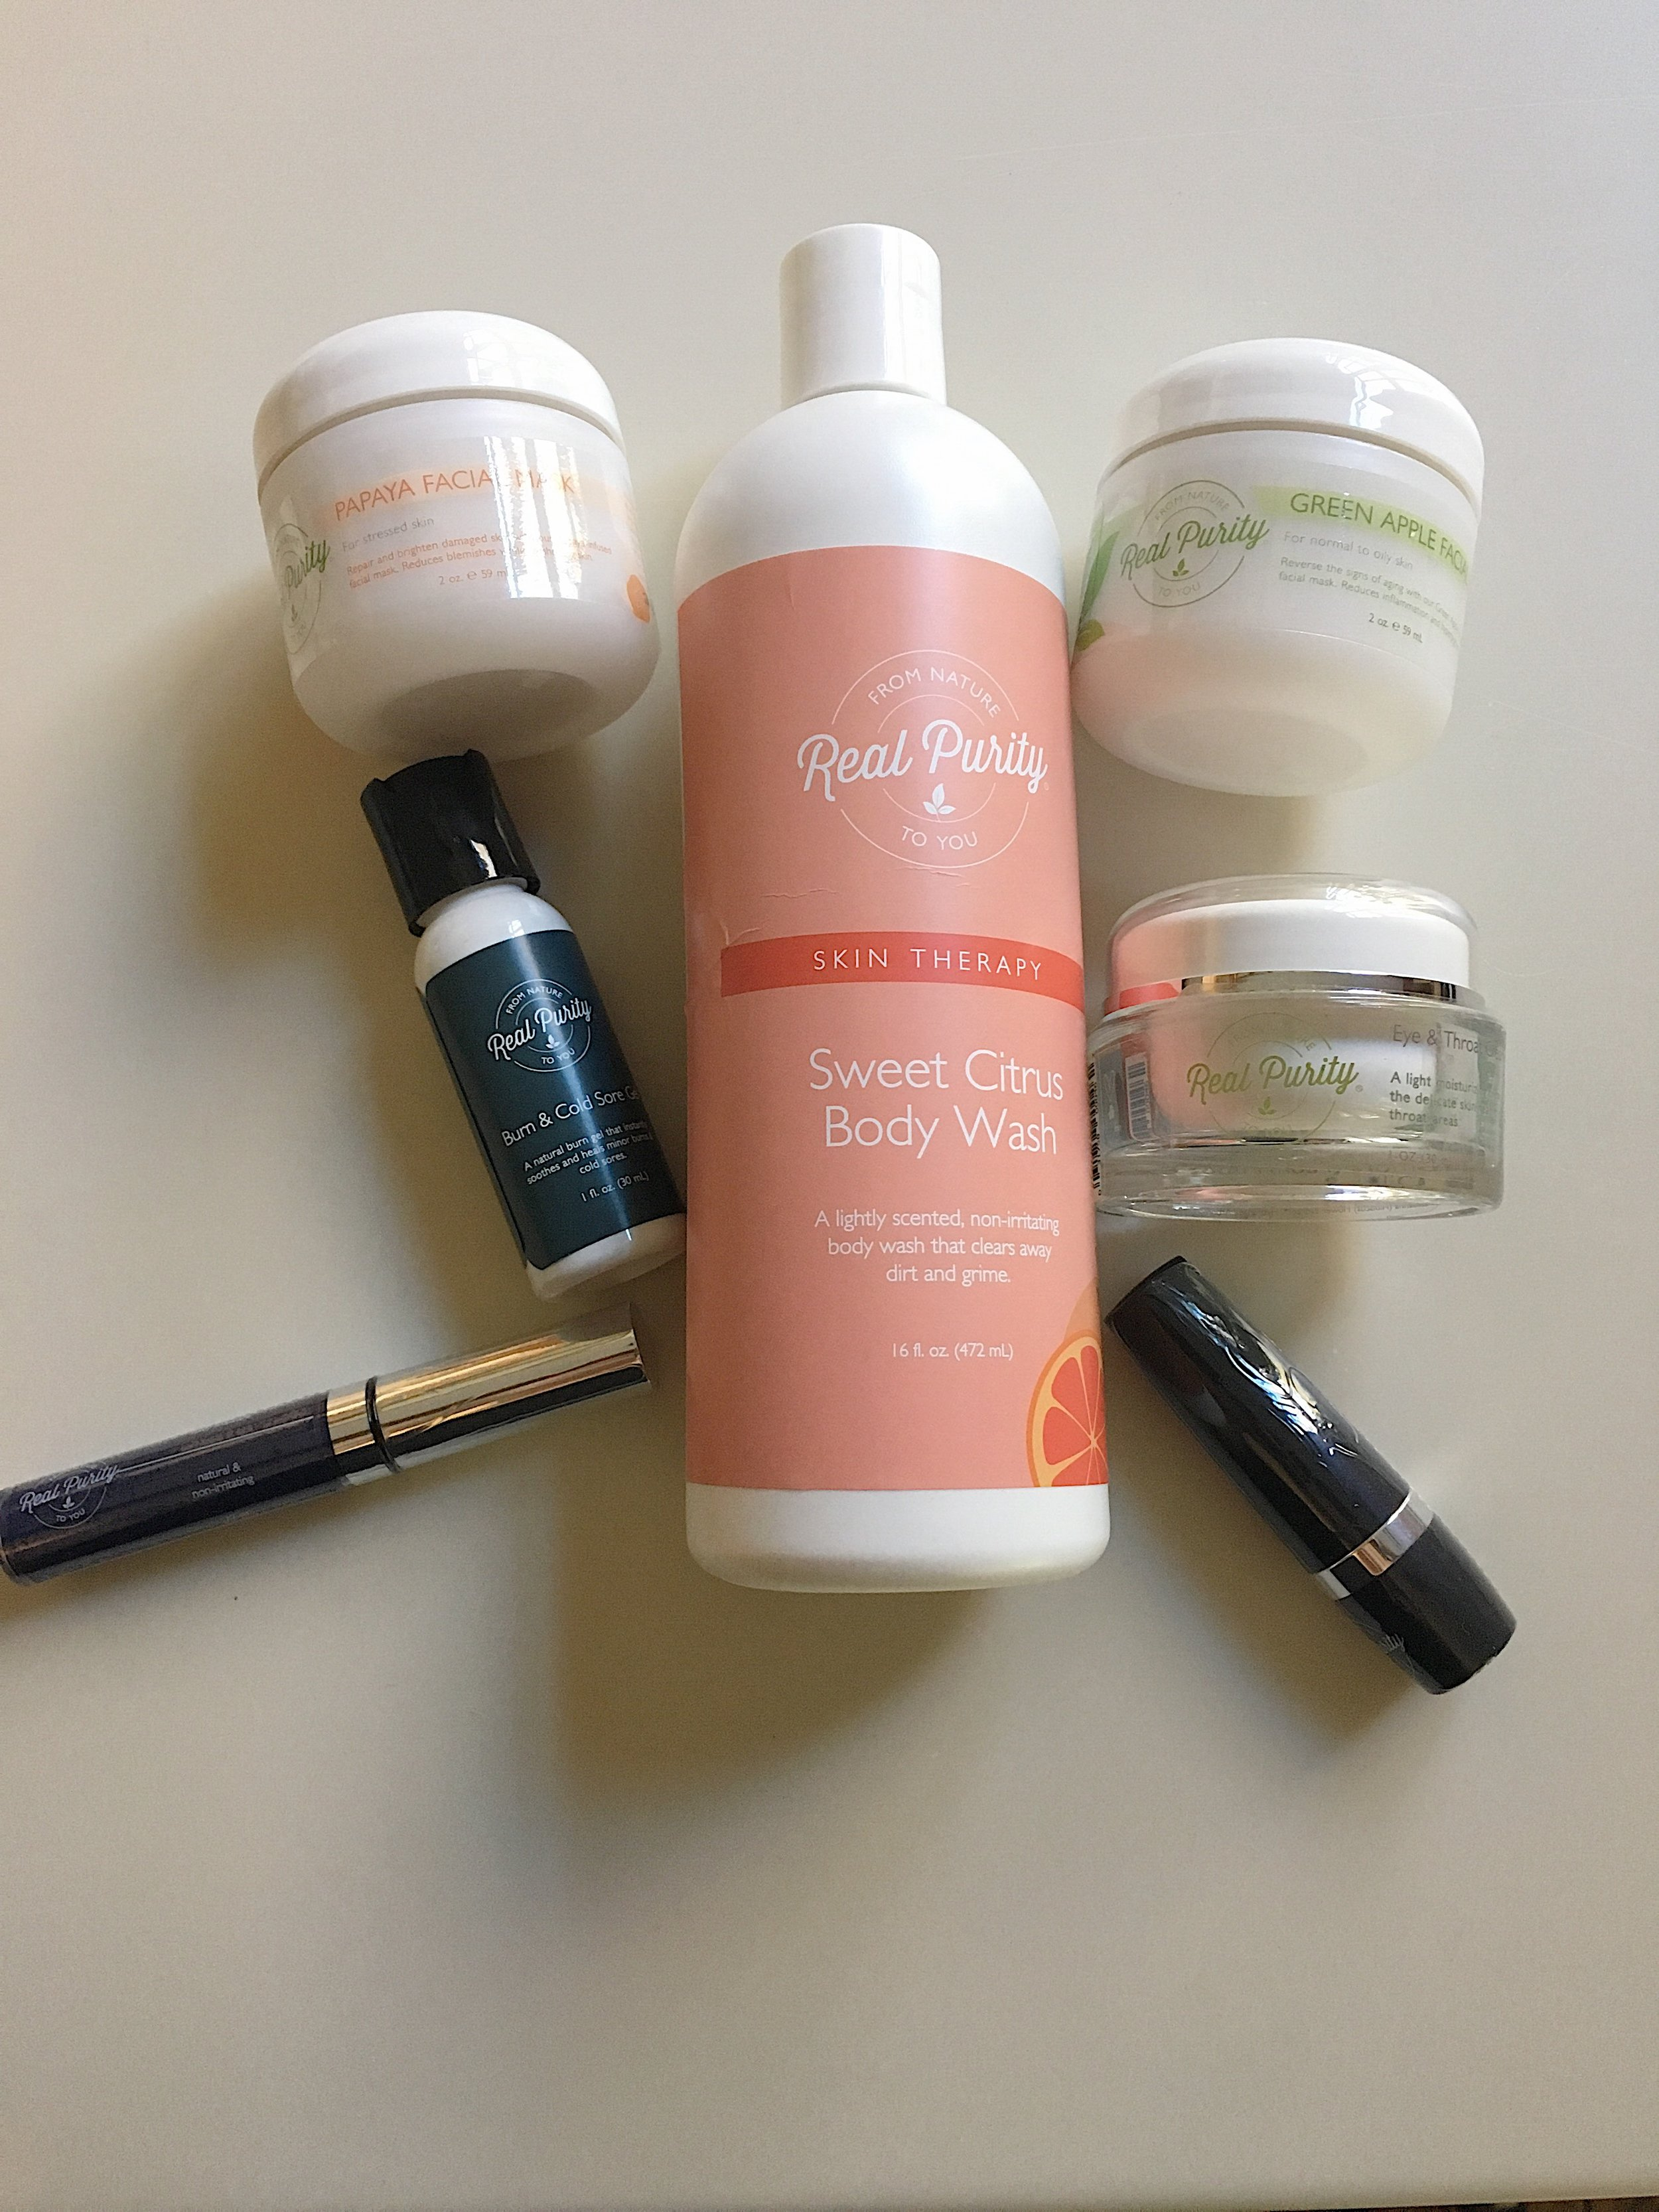 If you are into the freshest scents, natural ingredients and products that make an instant impact, then you need to try out some of the products from   Real Purity  . The diverse product line makes it a one-stop shop for my beauty essentials! I love a great face mask and I have tried both of the options pictured above and can tell you they go on like a dream while feel so refreshing. Every single product pictured above I have tried and tested and have already recommended them to friends and family, can't wait to try more!             About Real Purity       VIRGINIA EASTERLINA- A PIONEER FOR PURITY    Decades before organic and all natural goods rose in popularity, Virginia Easterling taught skin condition sufferers that living healthy could begin by living naturally; but it was only after years of seeing the damage of toxicity and the results of its removal from everyday products that Virginia decided to take a stand. Armed with a biochemistry background, a love for natural ingredients and a desire to replace toxic products with all-natural equivalents, Virginia Easterling set out to launch Real Purity.     AN EMPHASIS ON QUALITY    Since Virginia's time, the Easterling family continues to meticulously craft the formulas for Real Purity's product line. Following the standard of tradition, each Real Purity item contains only the highest quality ingredients and is free from parabens, sulfates and other toxic chemicals, including aluminum and lead. The result? Making the highest quality products available to even the most sensitive of users.  Lead Free Lipstick   Aluminum Free Deodorant   Paraben-Free Mascara                    REAL PURITY TODAY, FOUR GENERATIONS OF TRADITION    Today, the Easterling family continues to care for their customers with the same passion that Virginia first shared. With the same focus on their customers and a driving desire to provide only the highest quality products to women and men, the Easterling family vows to continue innovating thei